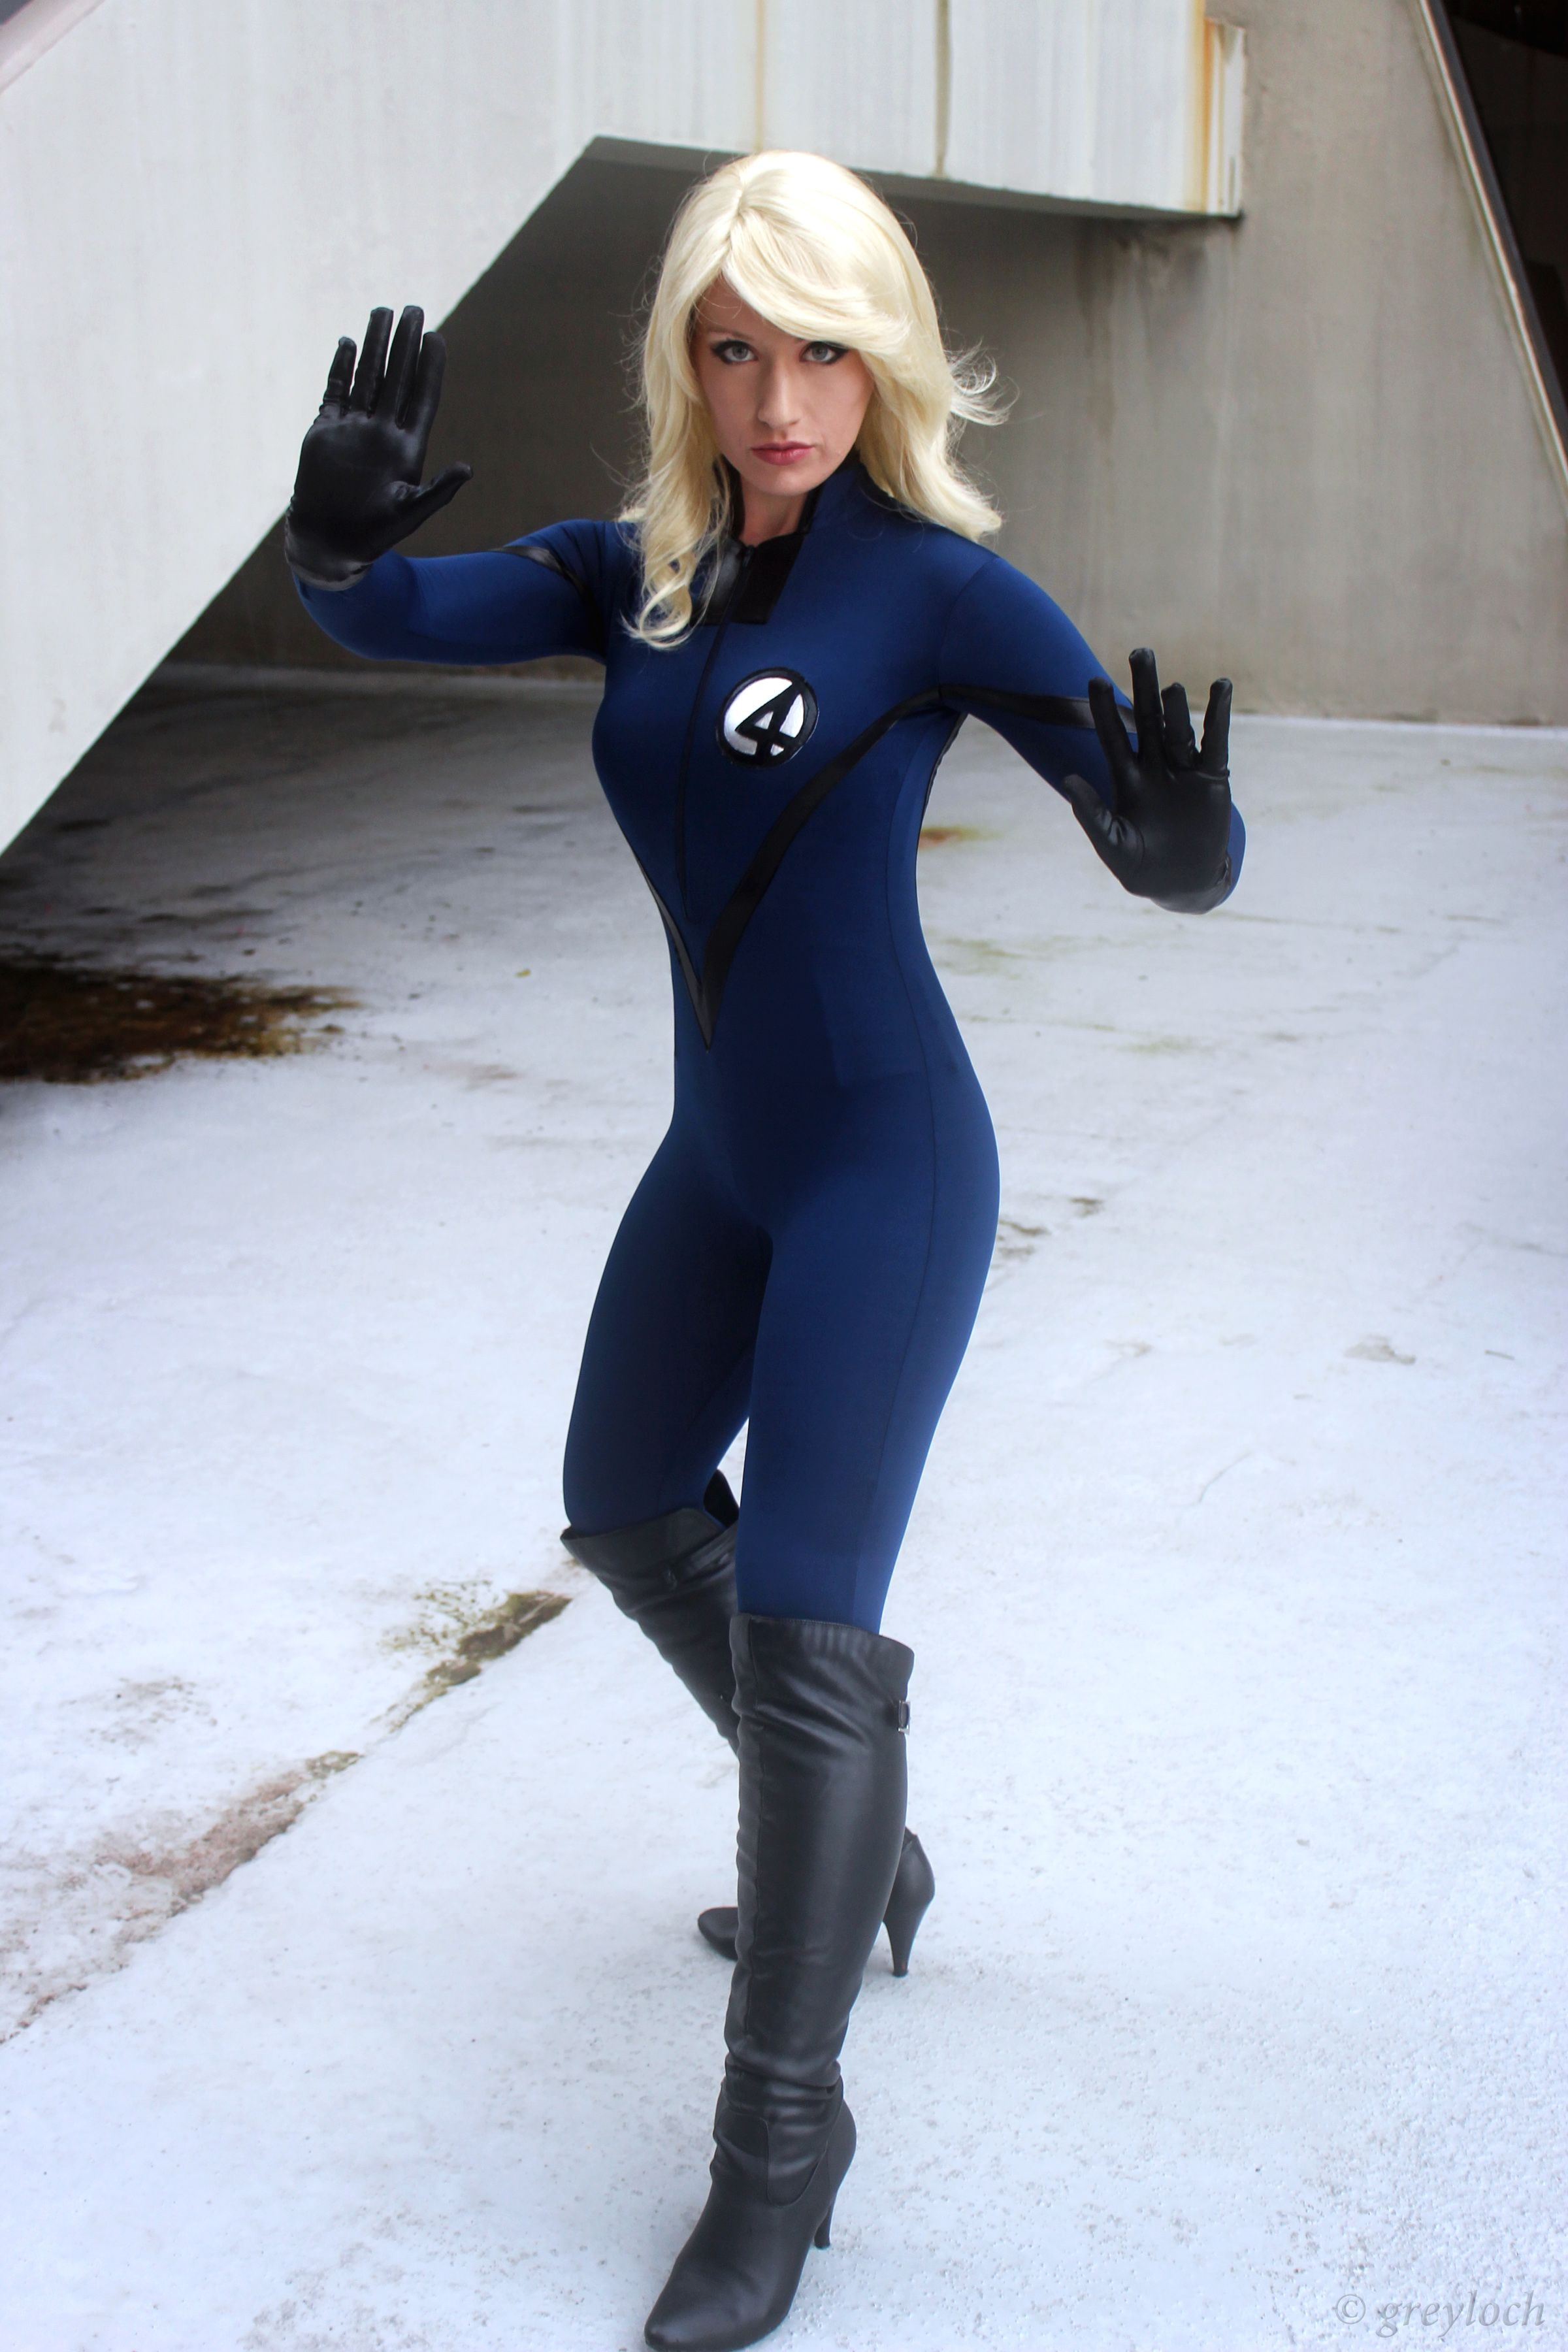 Hot thick blonde milf cosplay pinterest